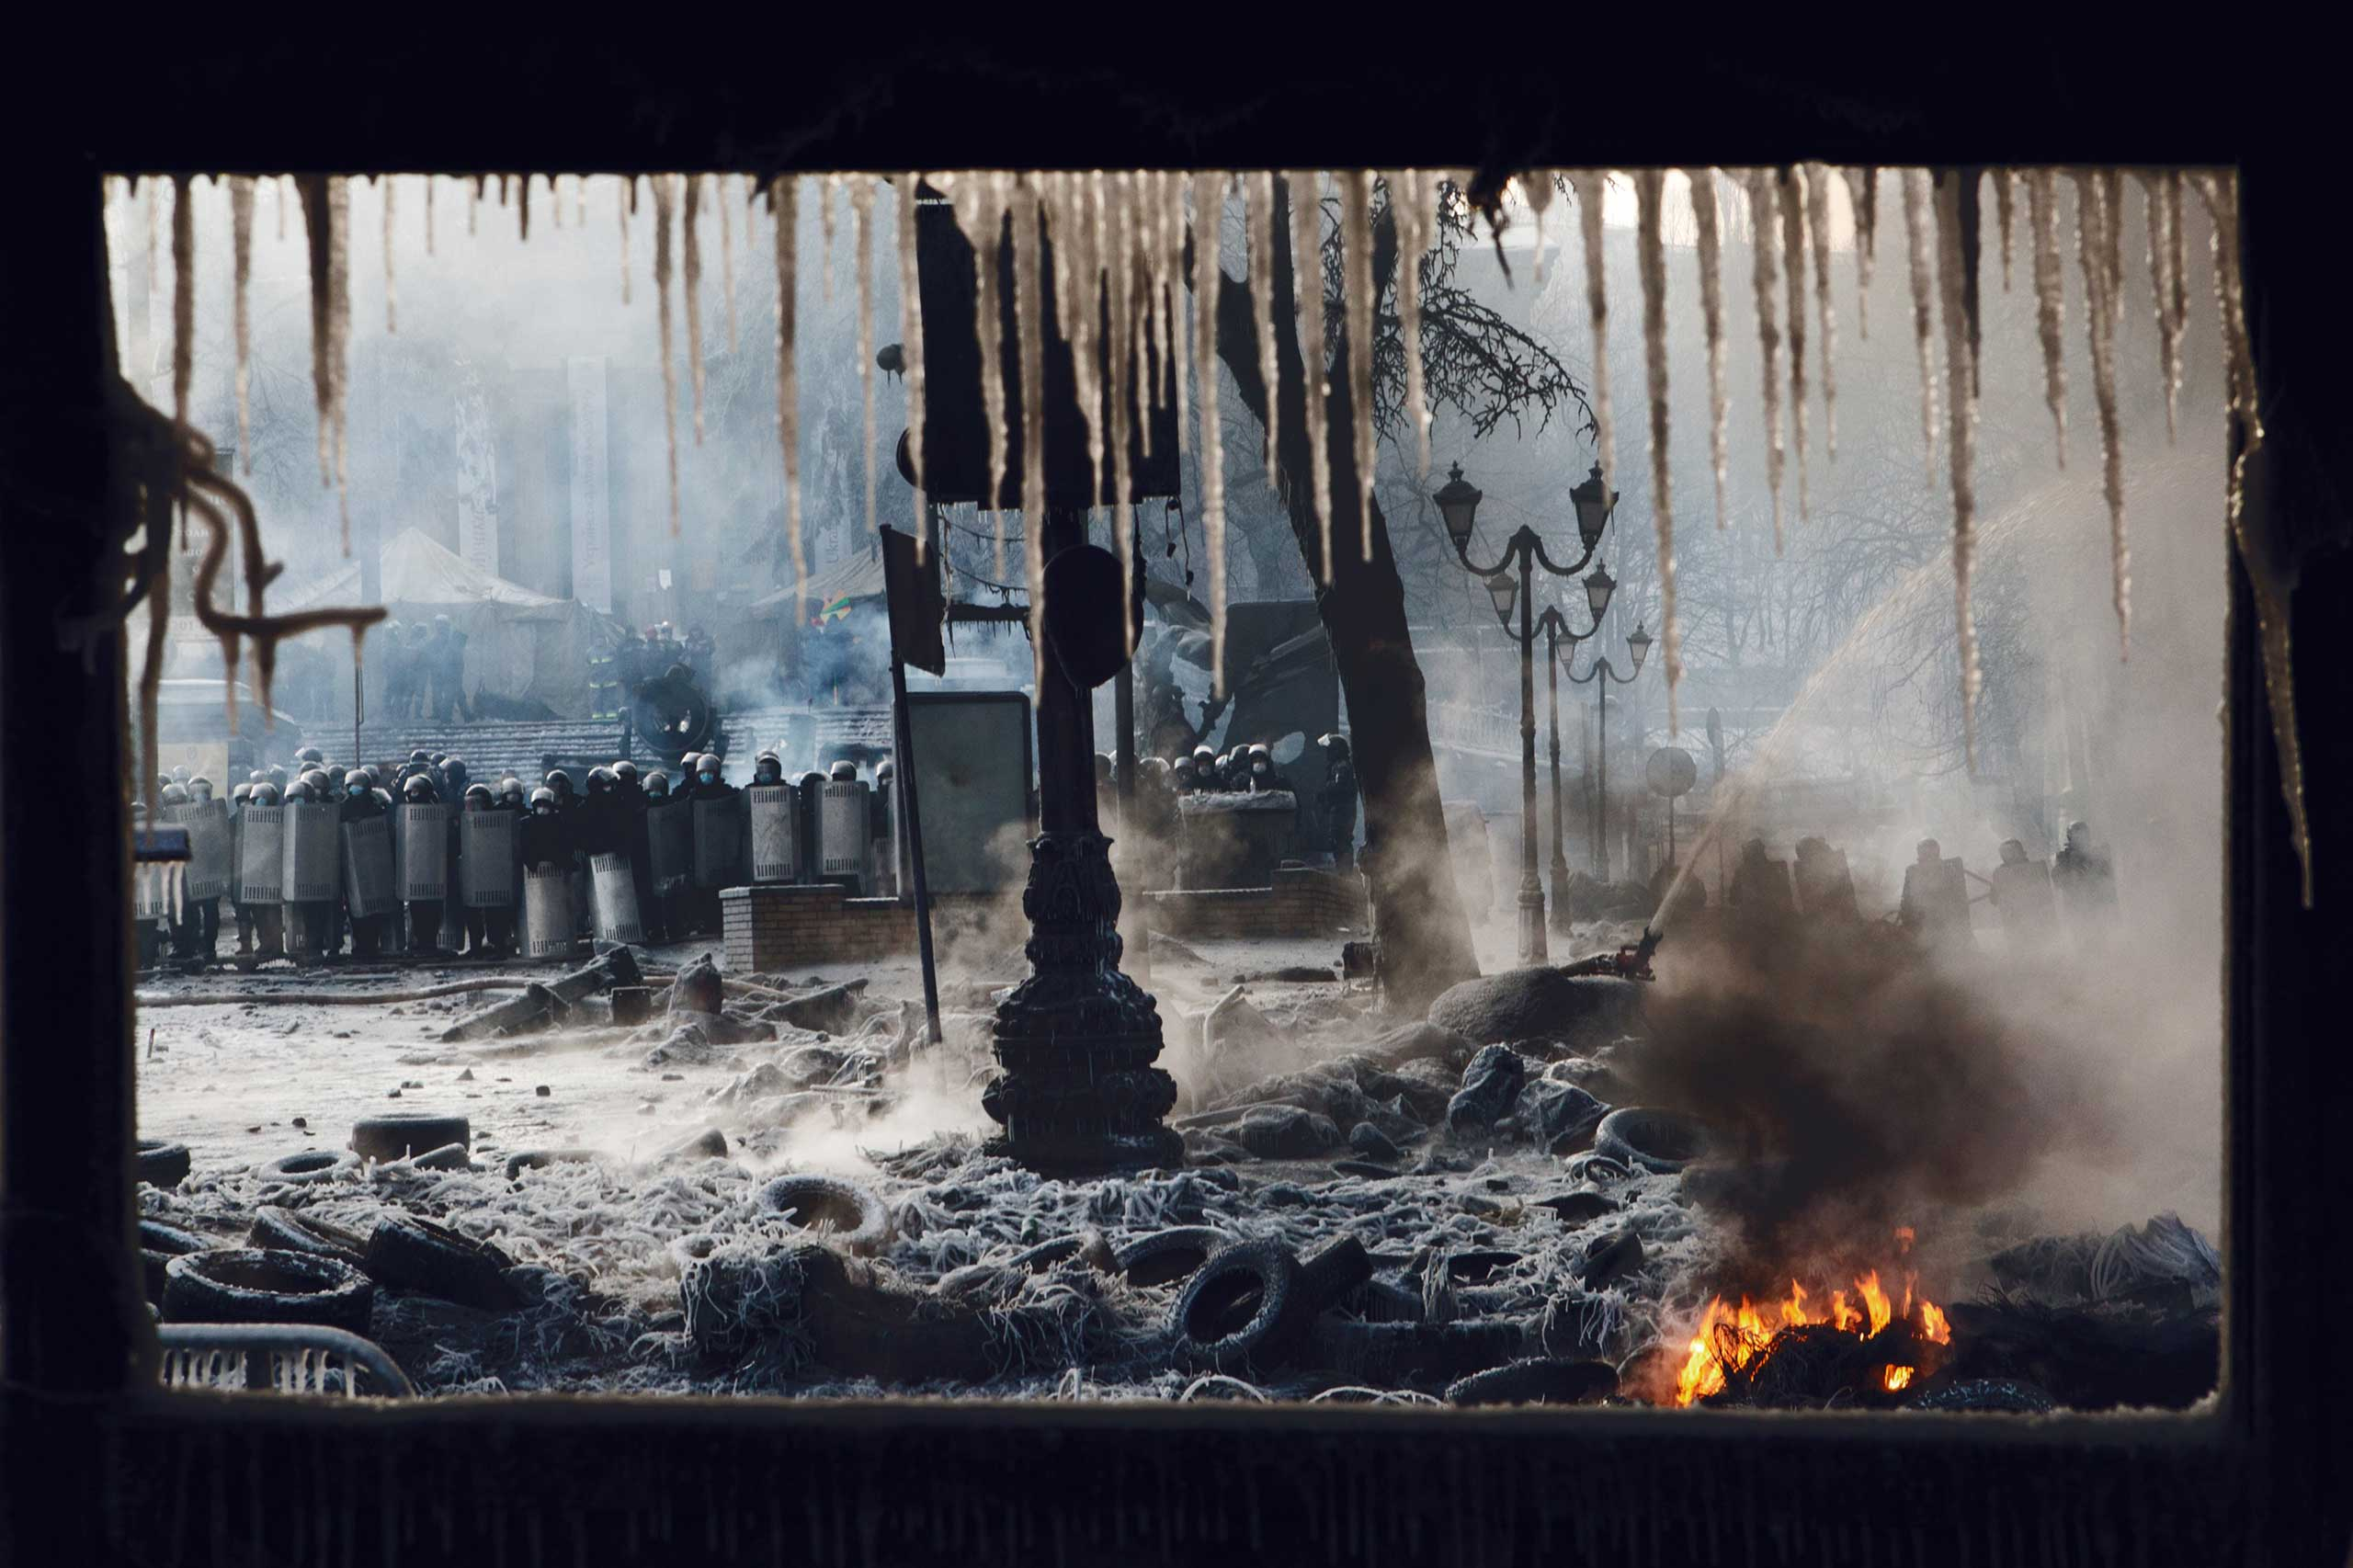 Jan. 25, 2014. Riot police keep a fire hose aimed at protesters continuously during rioting on Hrushevskoho Street in central Kiev. Freezing temperatures creates a dramatic landscape of fire and ice. From Fire and Ice in Kiev: Ross McDonnell on Ukraine's Front Line